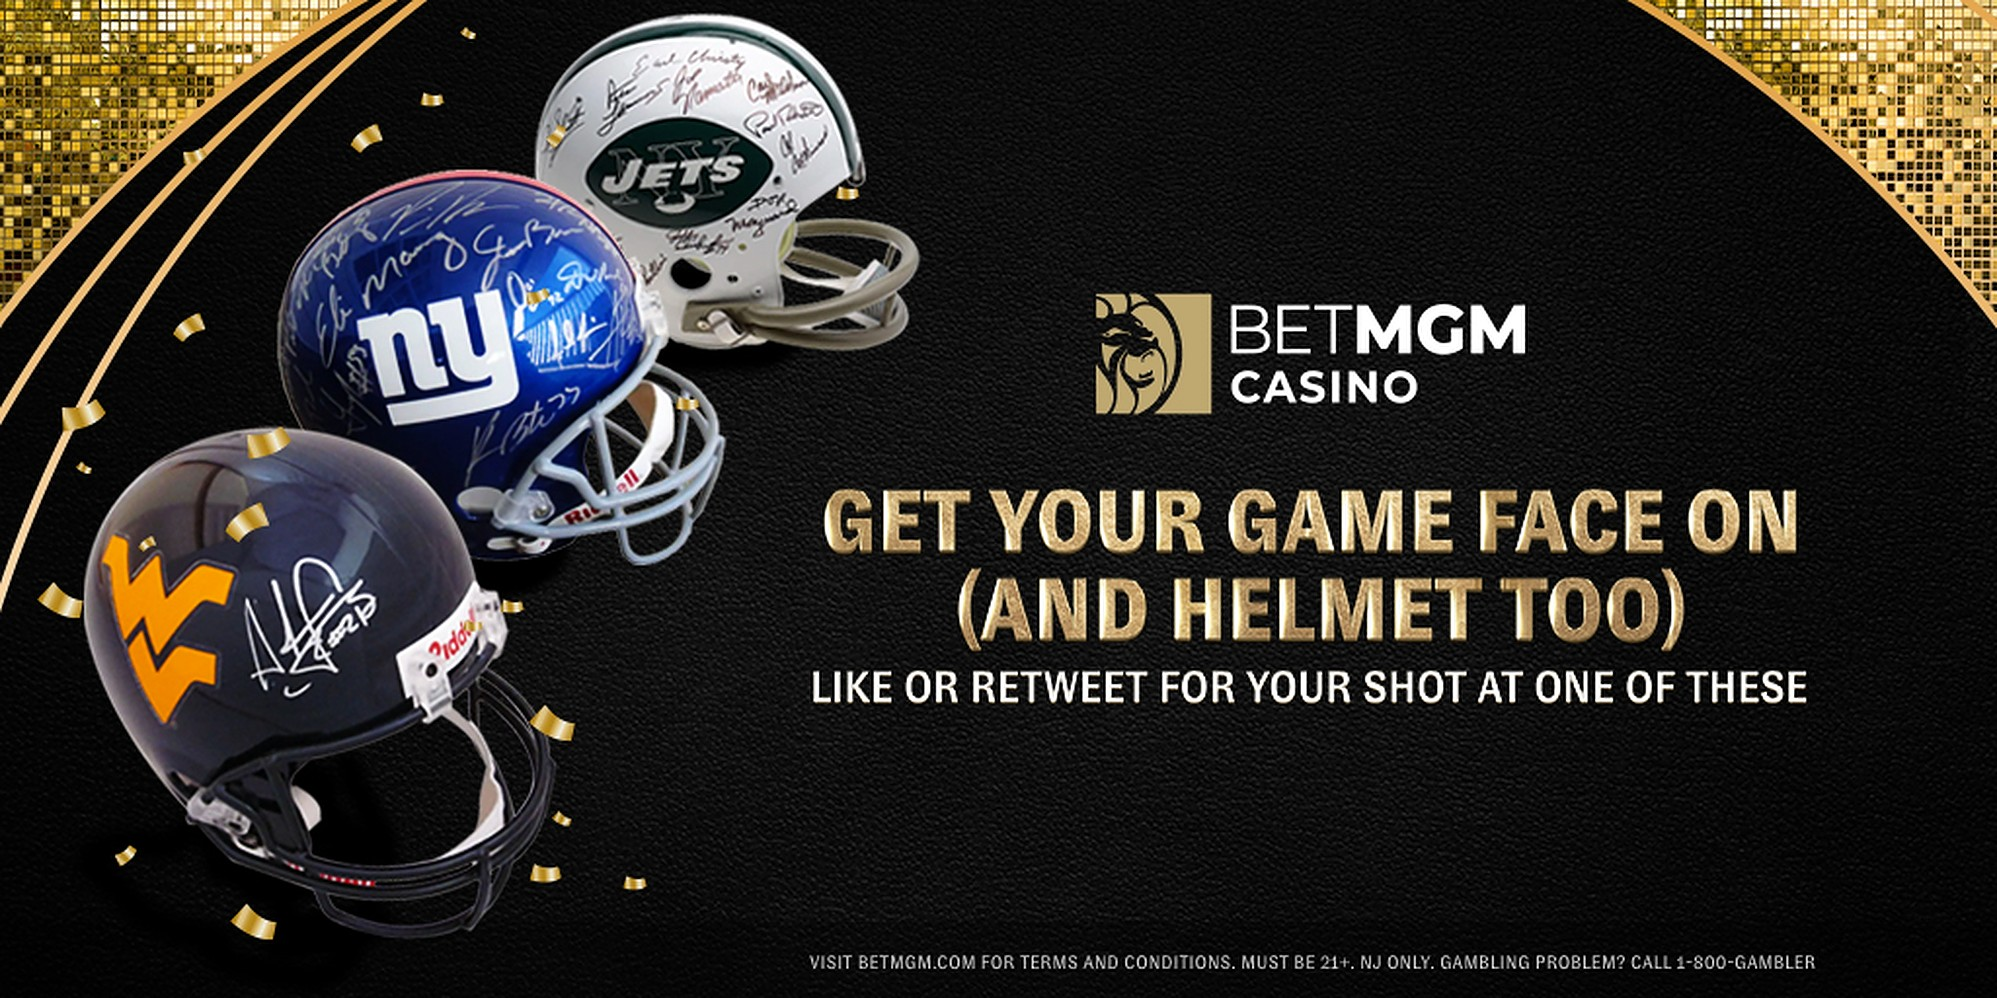 New York Giants, New York Jets, and WVU Helmets Next to a BetMGM Logo and Giveaway Details